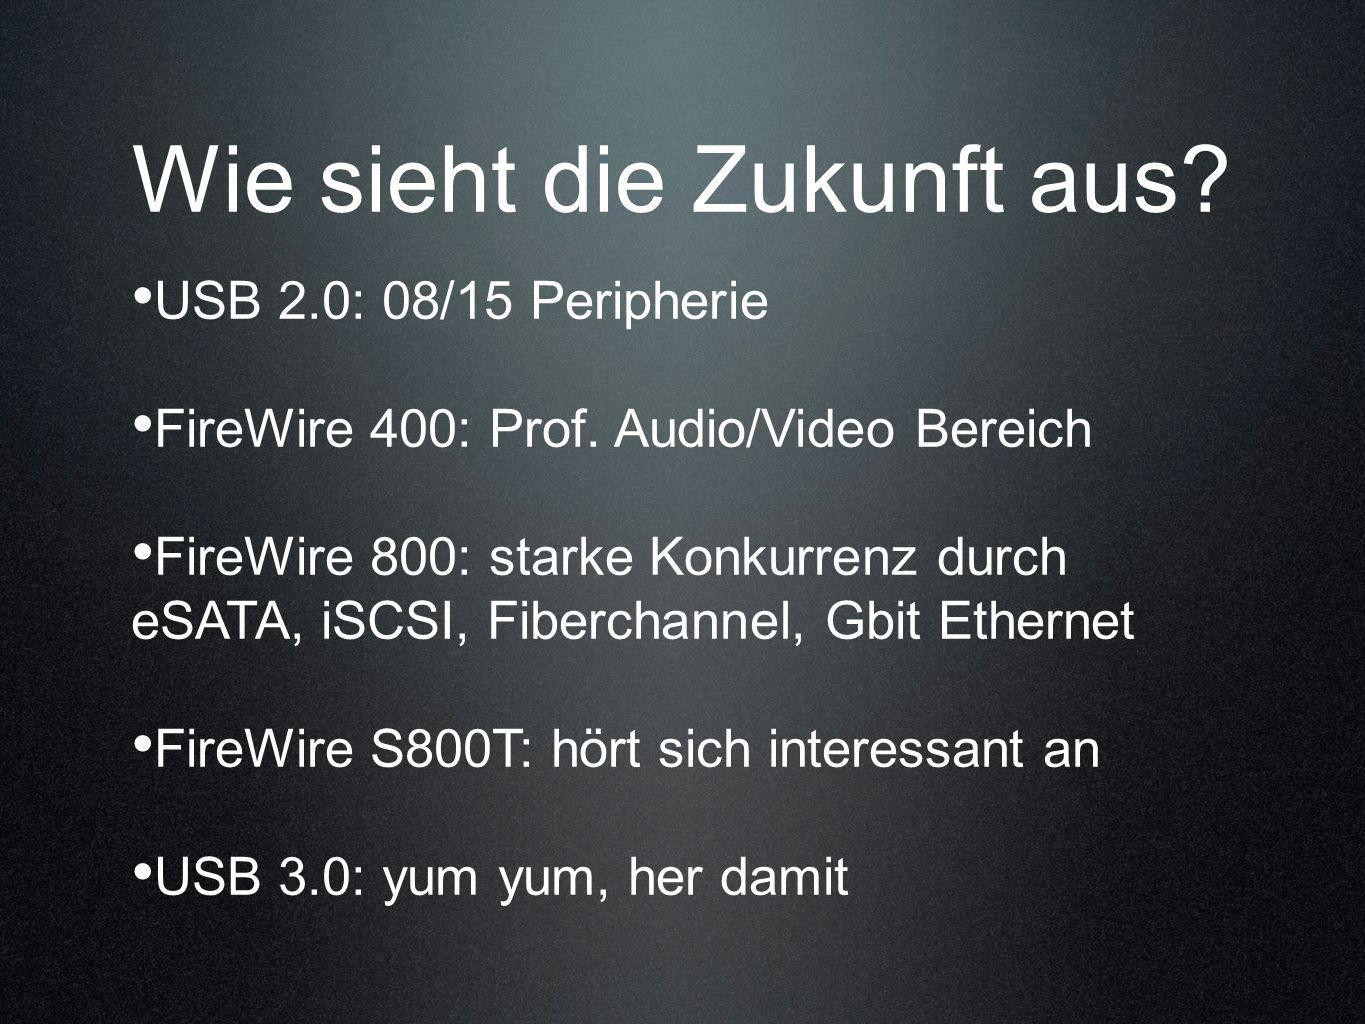 USB 2.0: 08/15 Peripherie FireWire 400: Prof. Audio/Video Bereich FireWire 800: starke Konkurrenz durch eSATA, iSCSI, Fiberchannel, Gbit Ethernet Fire